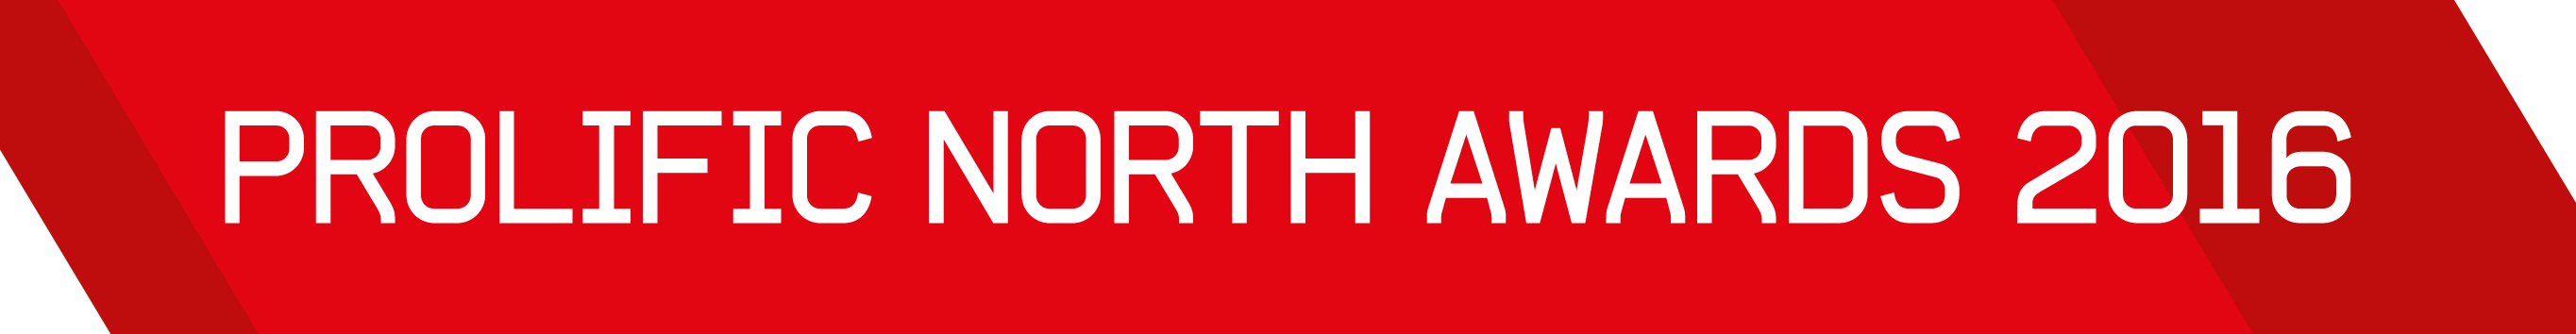 prolific_north_awards_ticket_banner-01.png